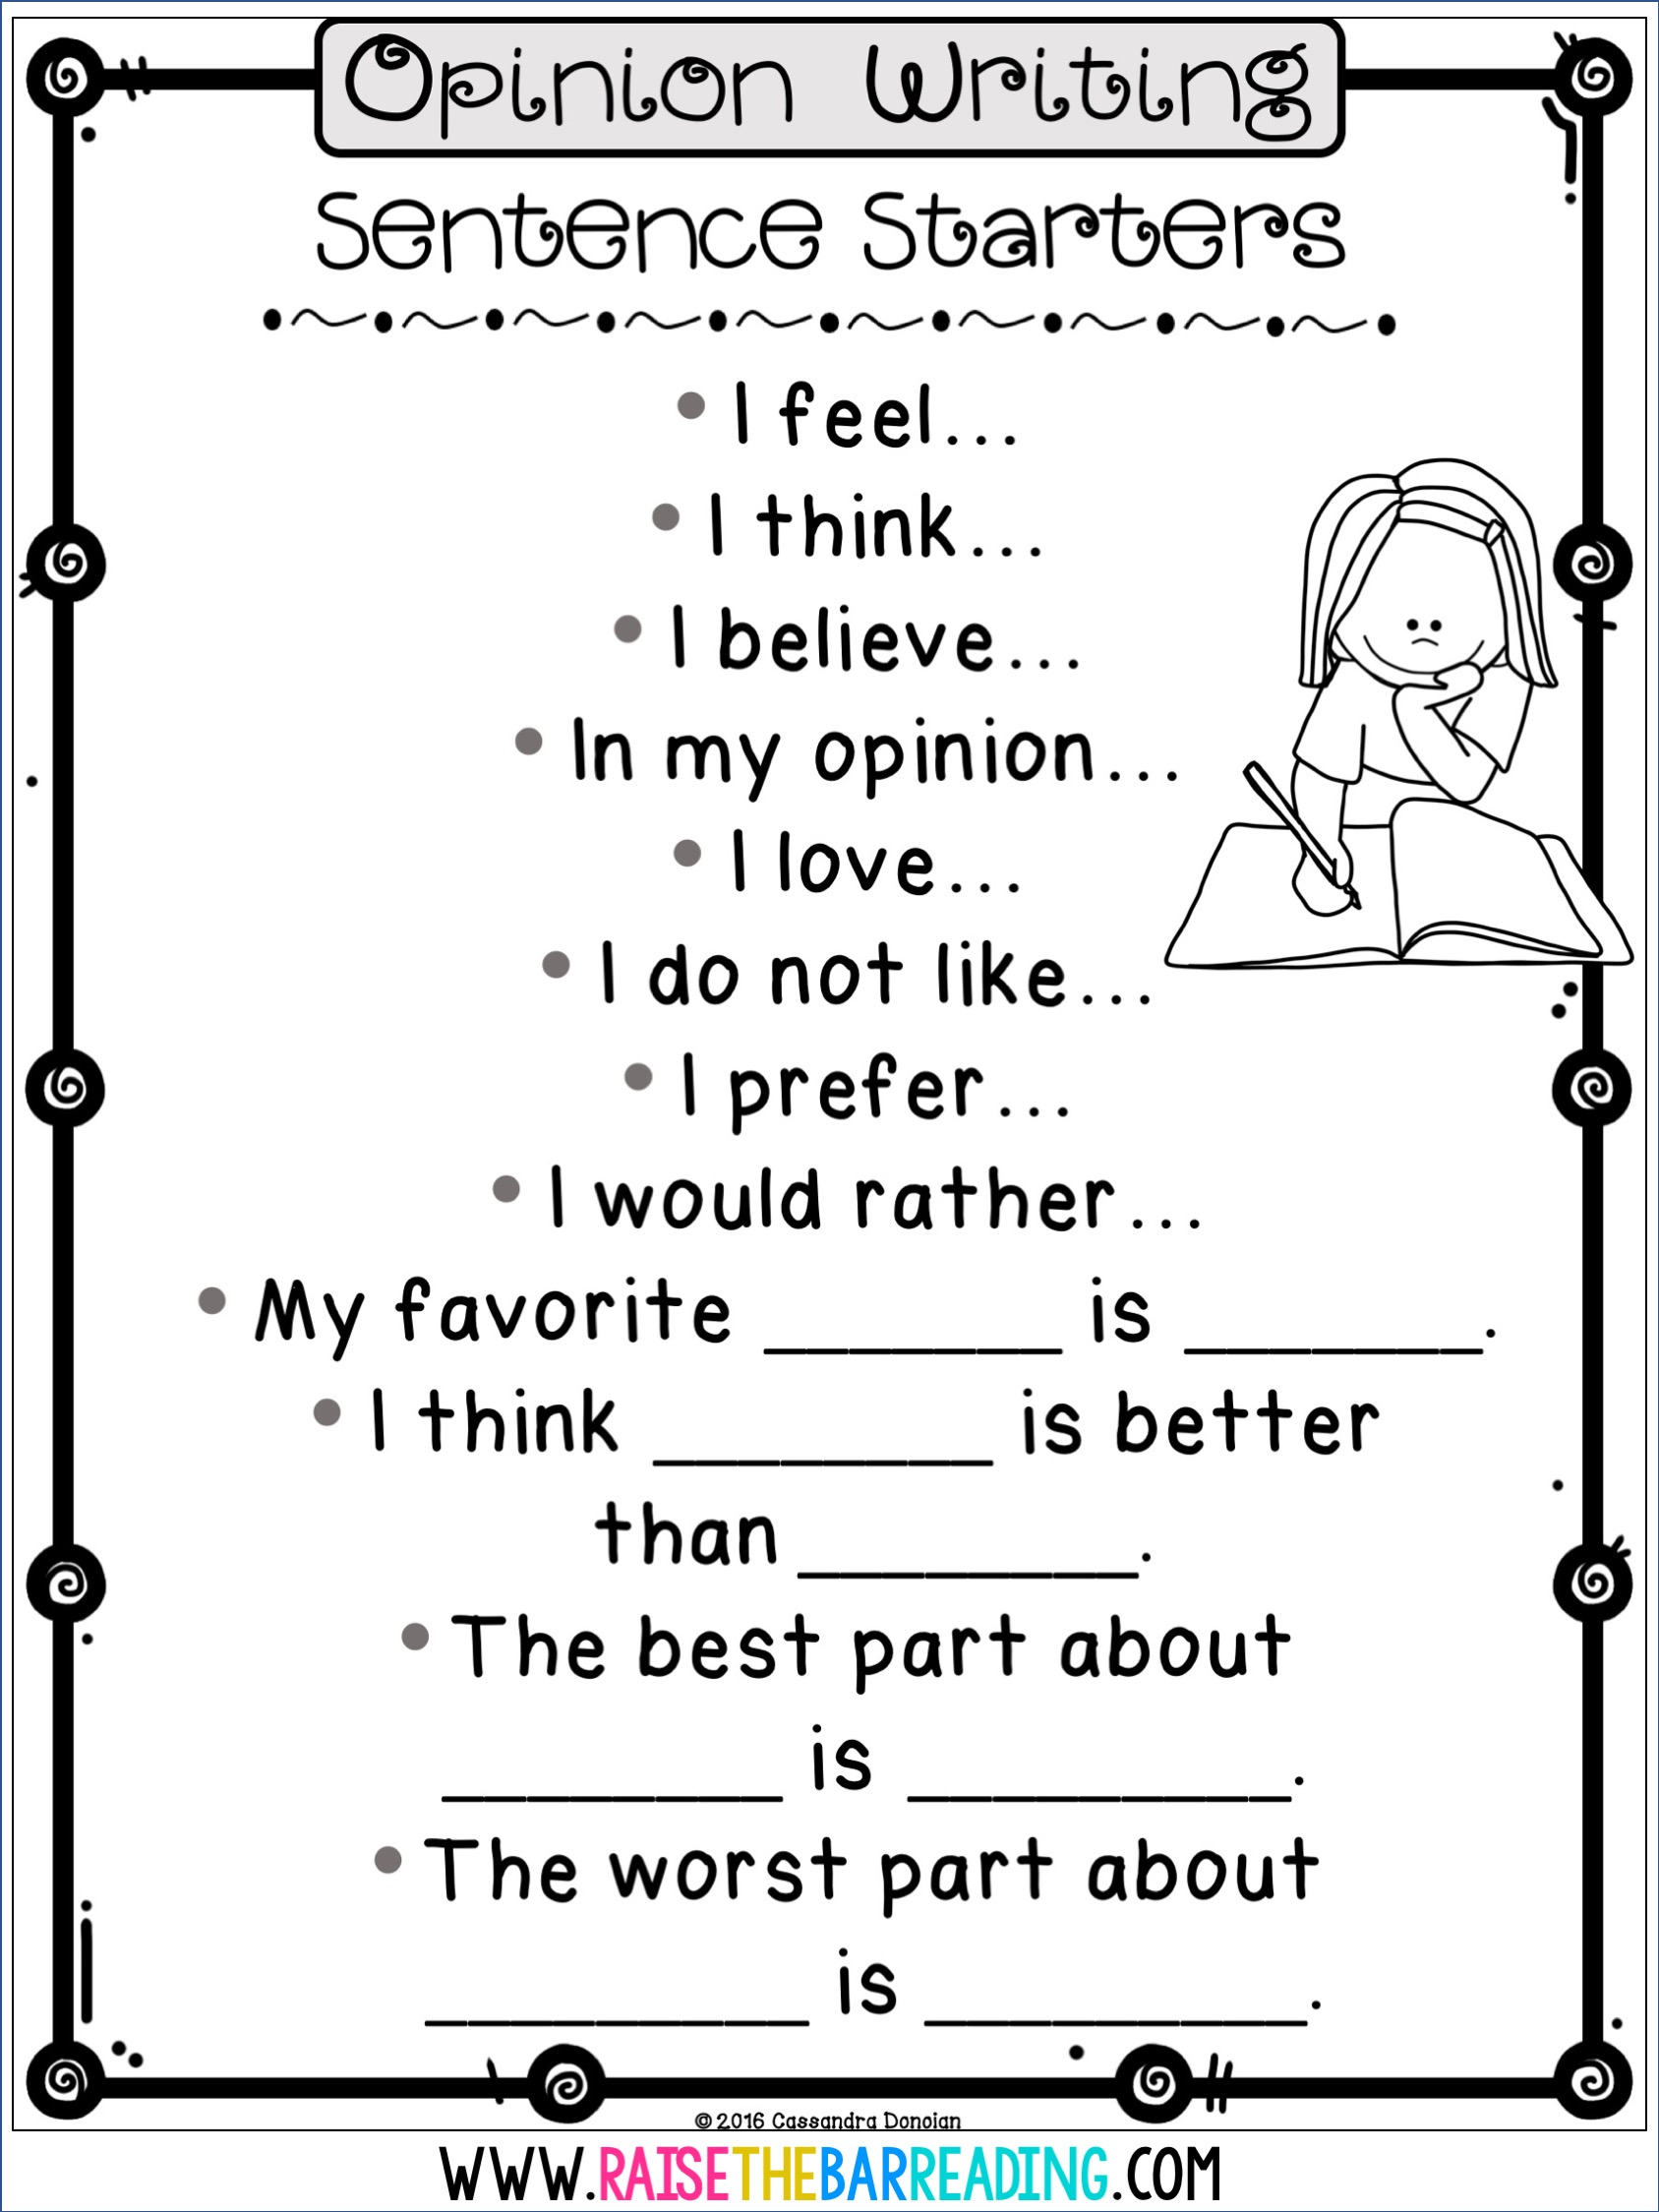 How I Teach Opinion Writing In The Primary Grades